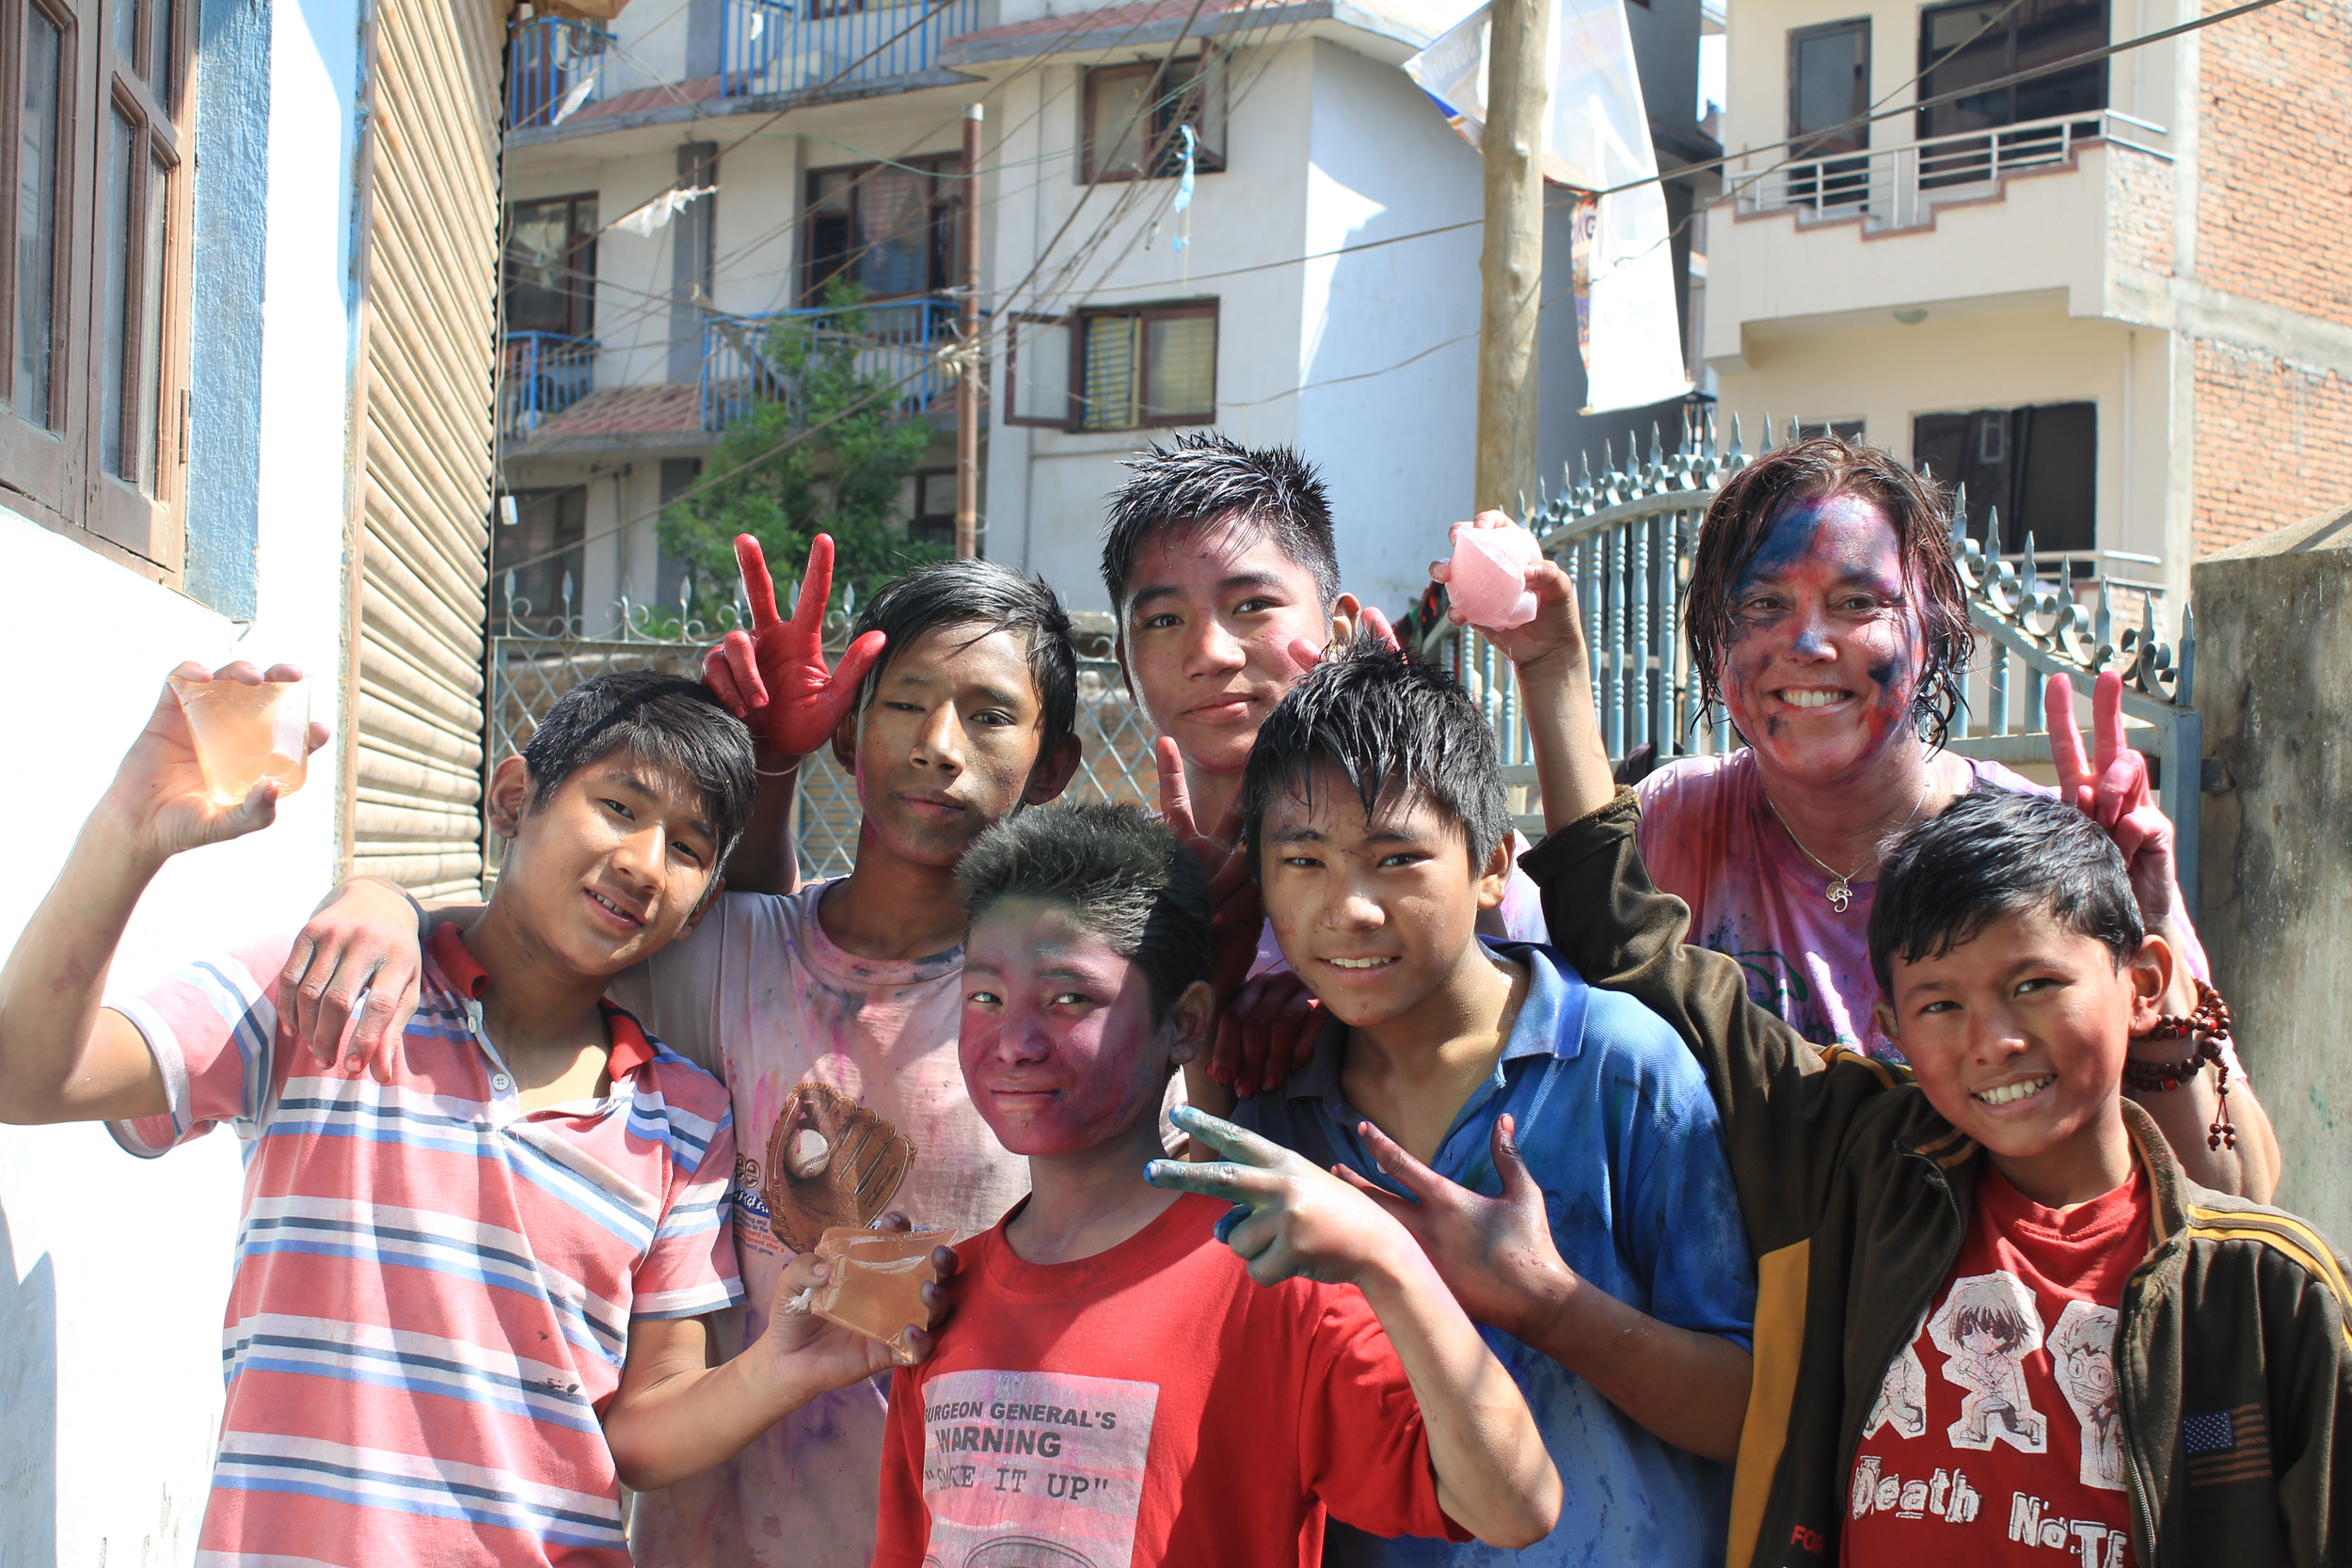 smothered with water bombs, colour&laughter